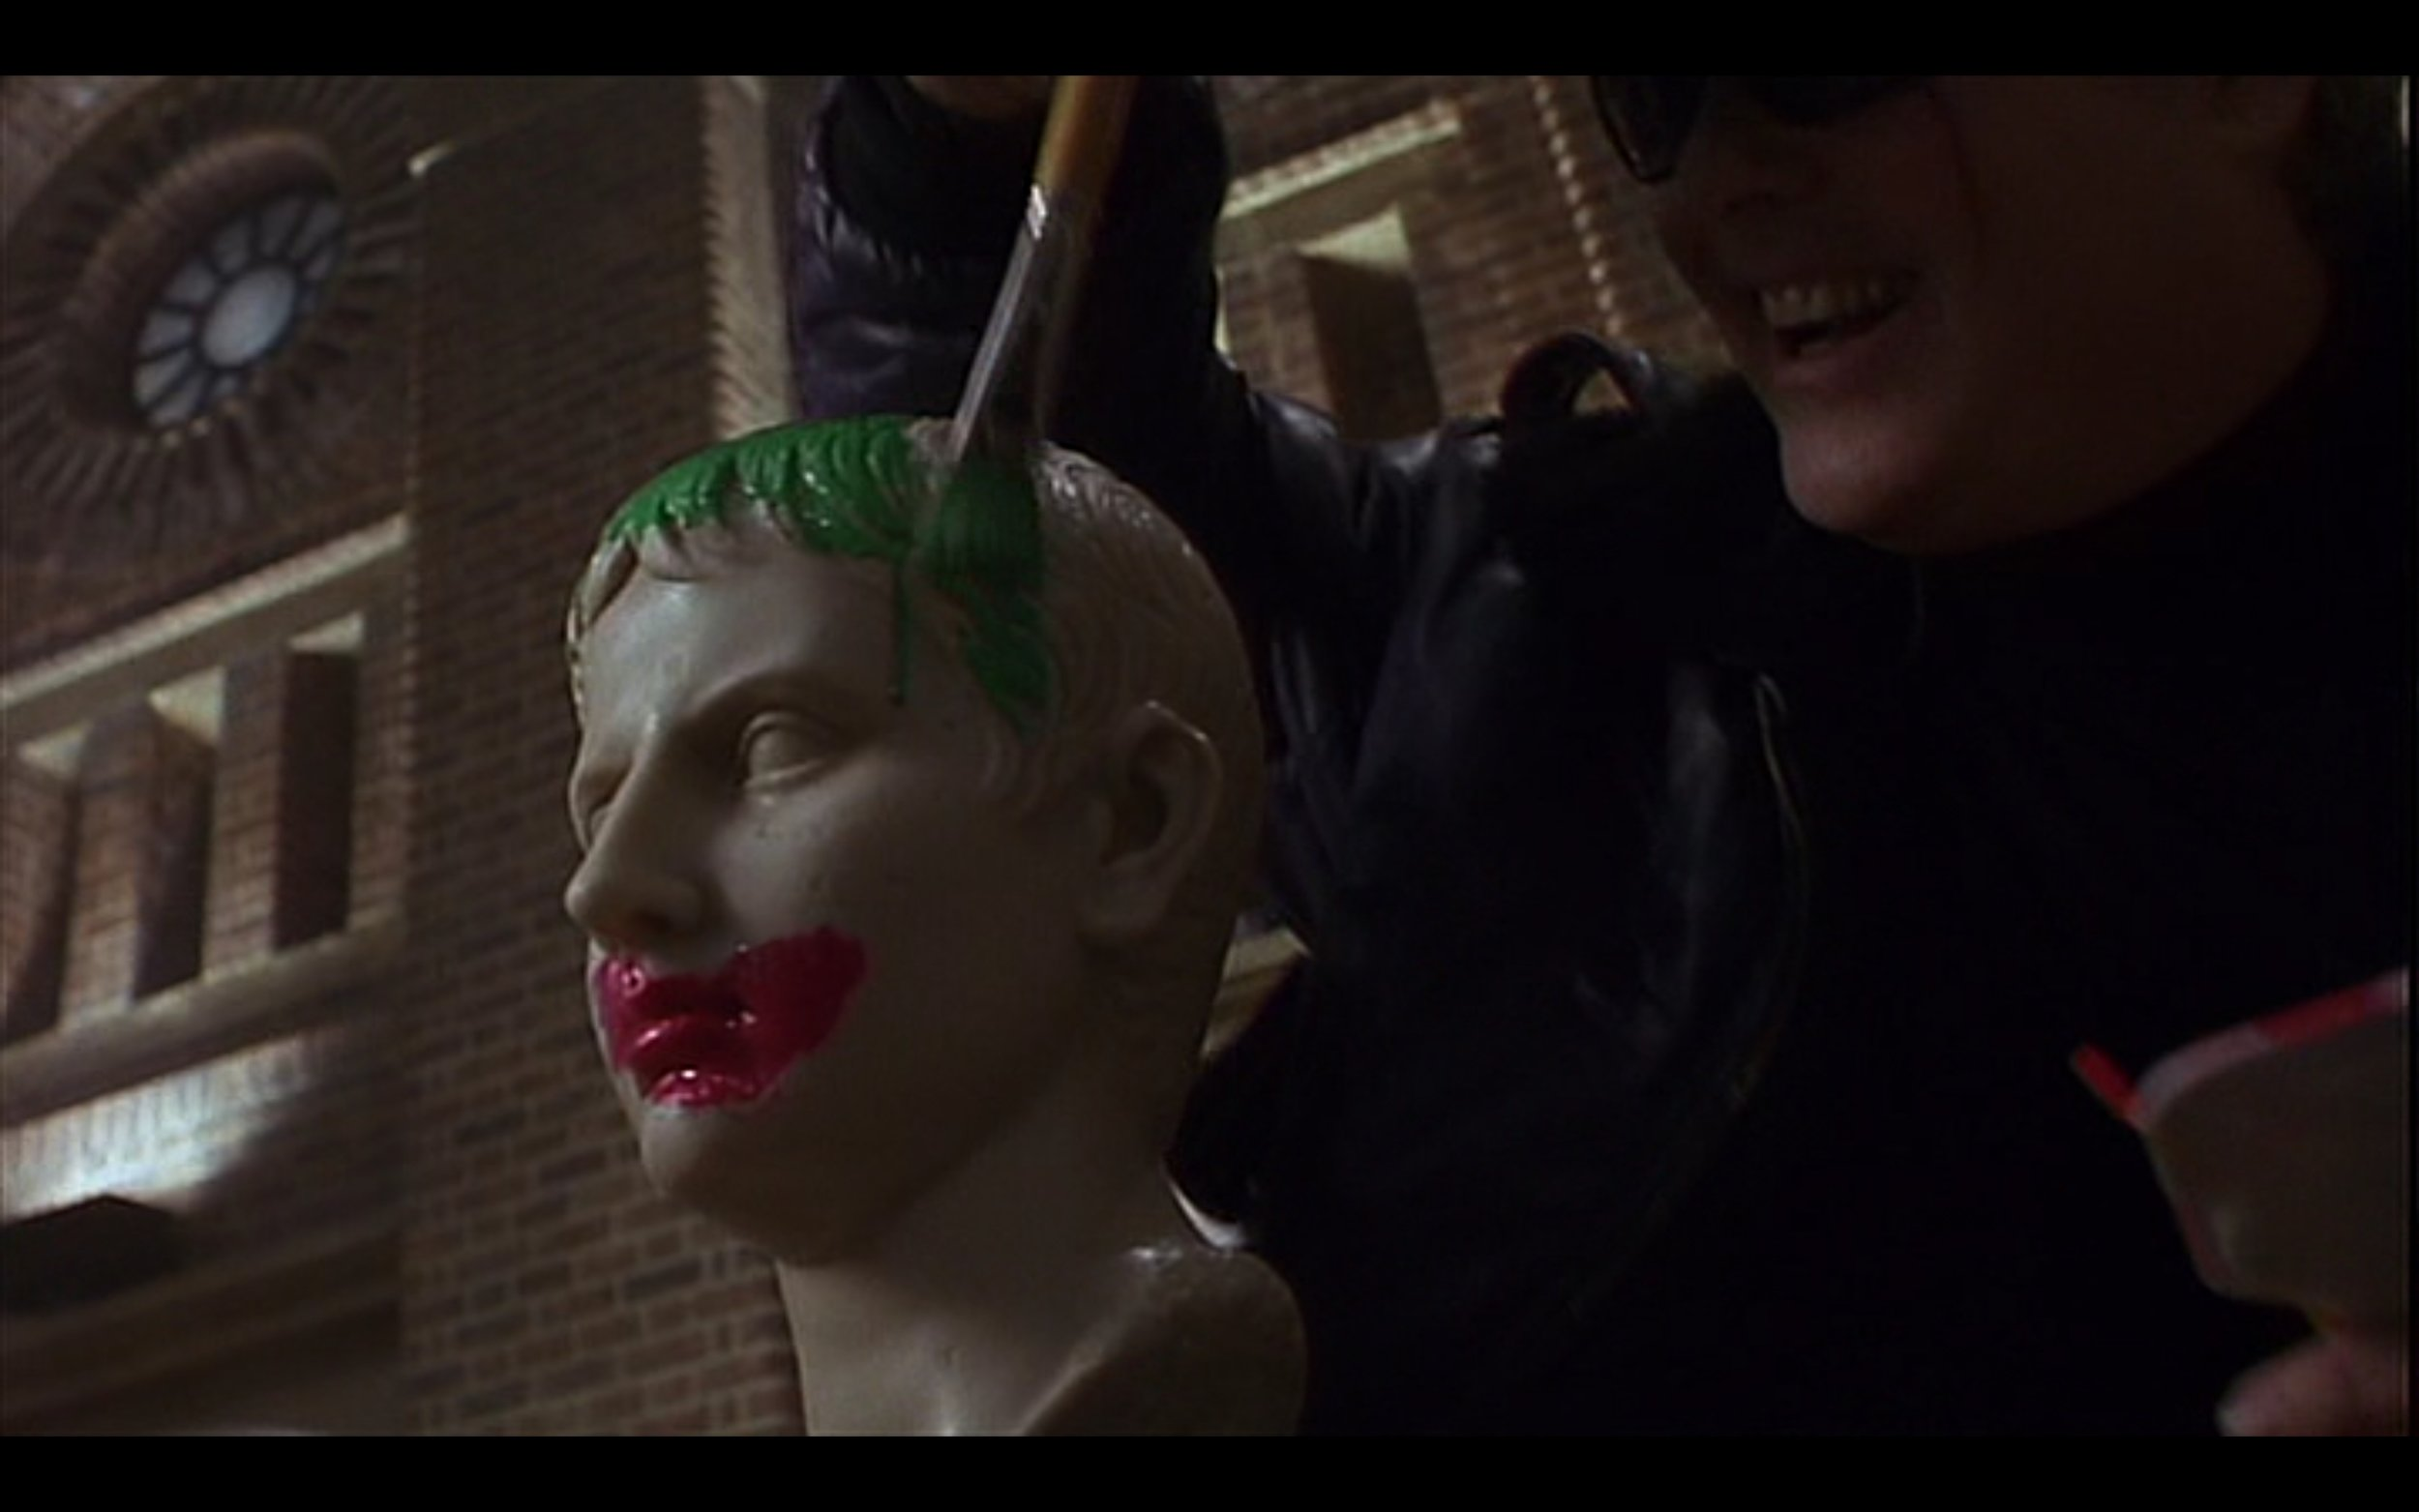 Figure 6: A bust of the young Octavian (who will eventually become the Roman emperor Augustus), is given green hair and red lips like the Joker in the film BATMAN (Burton 1989). Credit: Warner Brothers, The Gruber-Peters Company, Polygram Pictures.